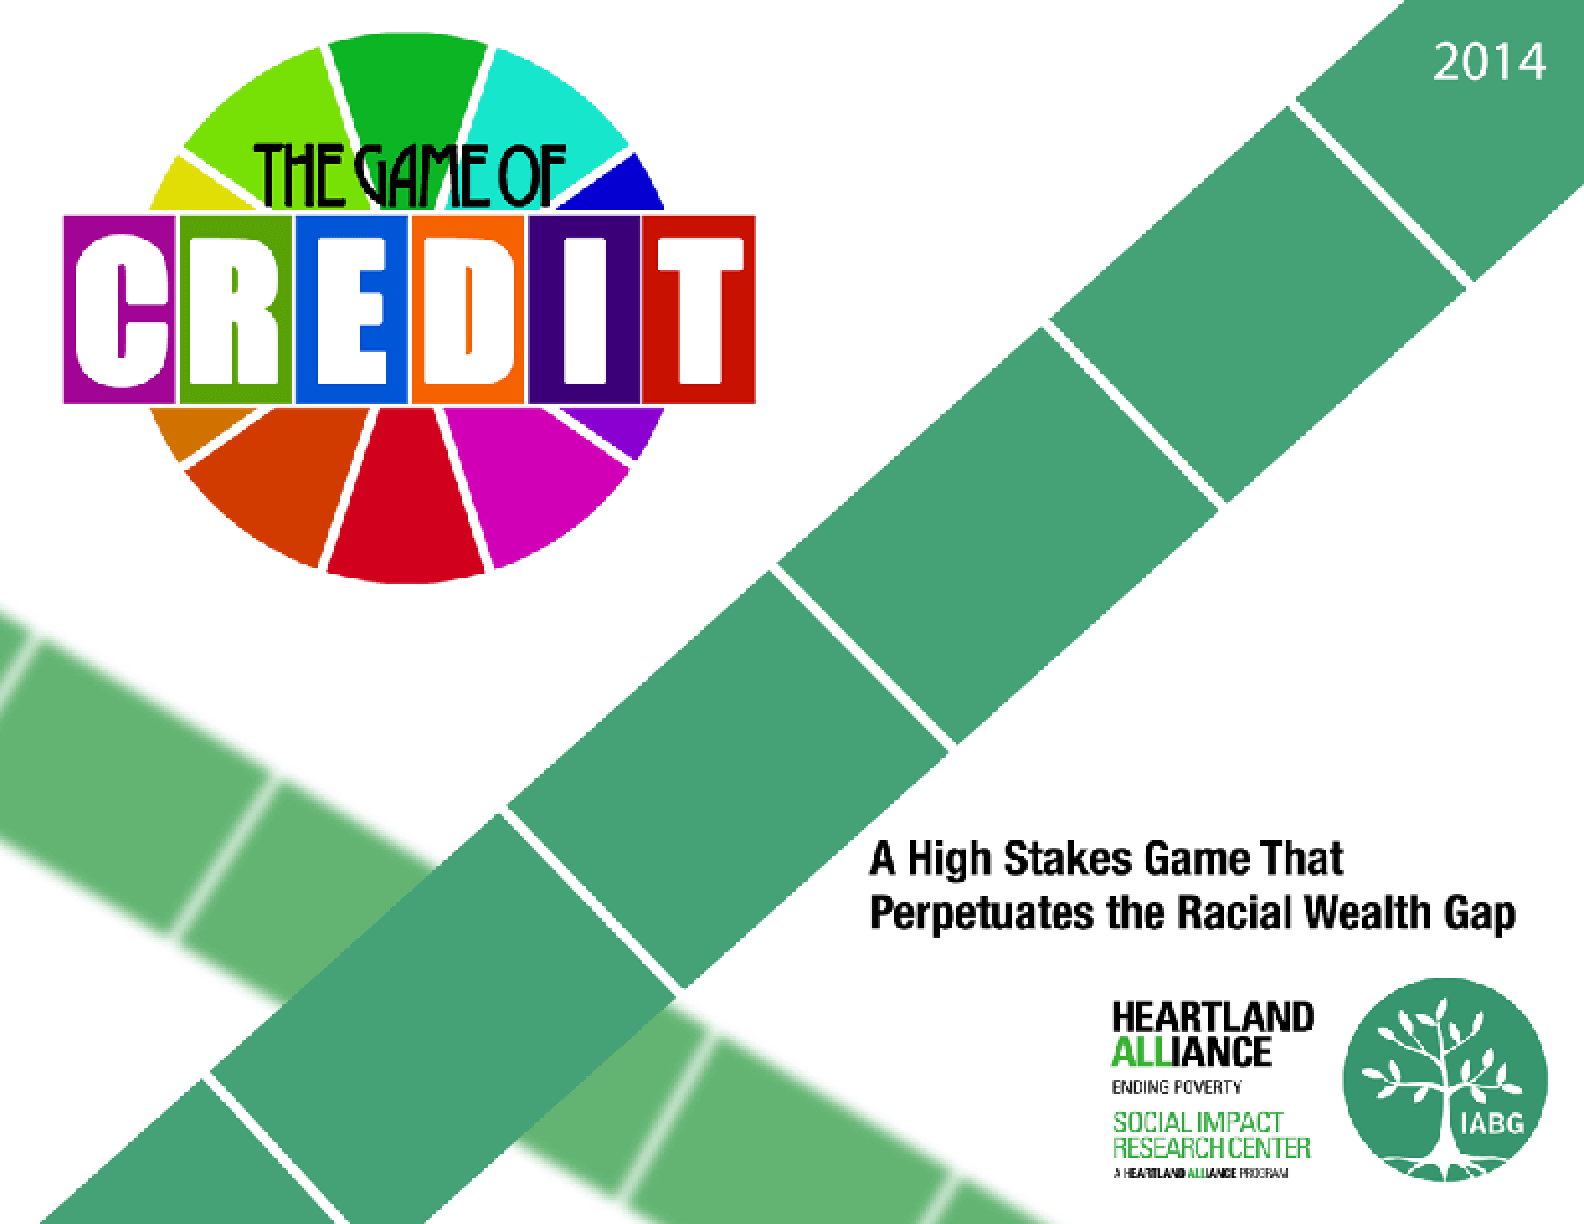 The Game of Credit: A High Stakes Game That Perpetuates the Racial Wealth Gap